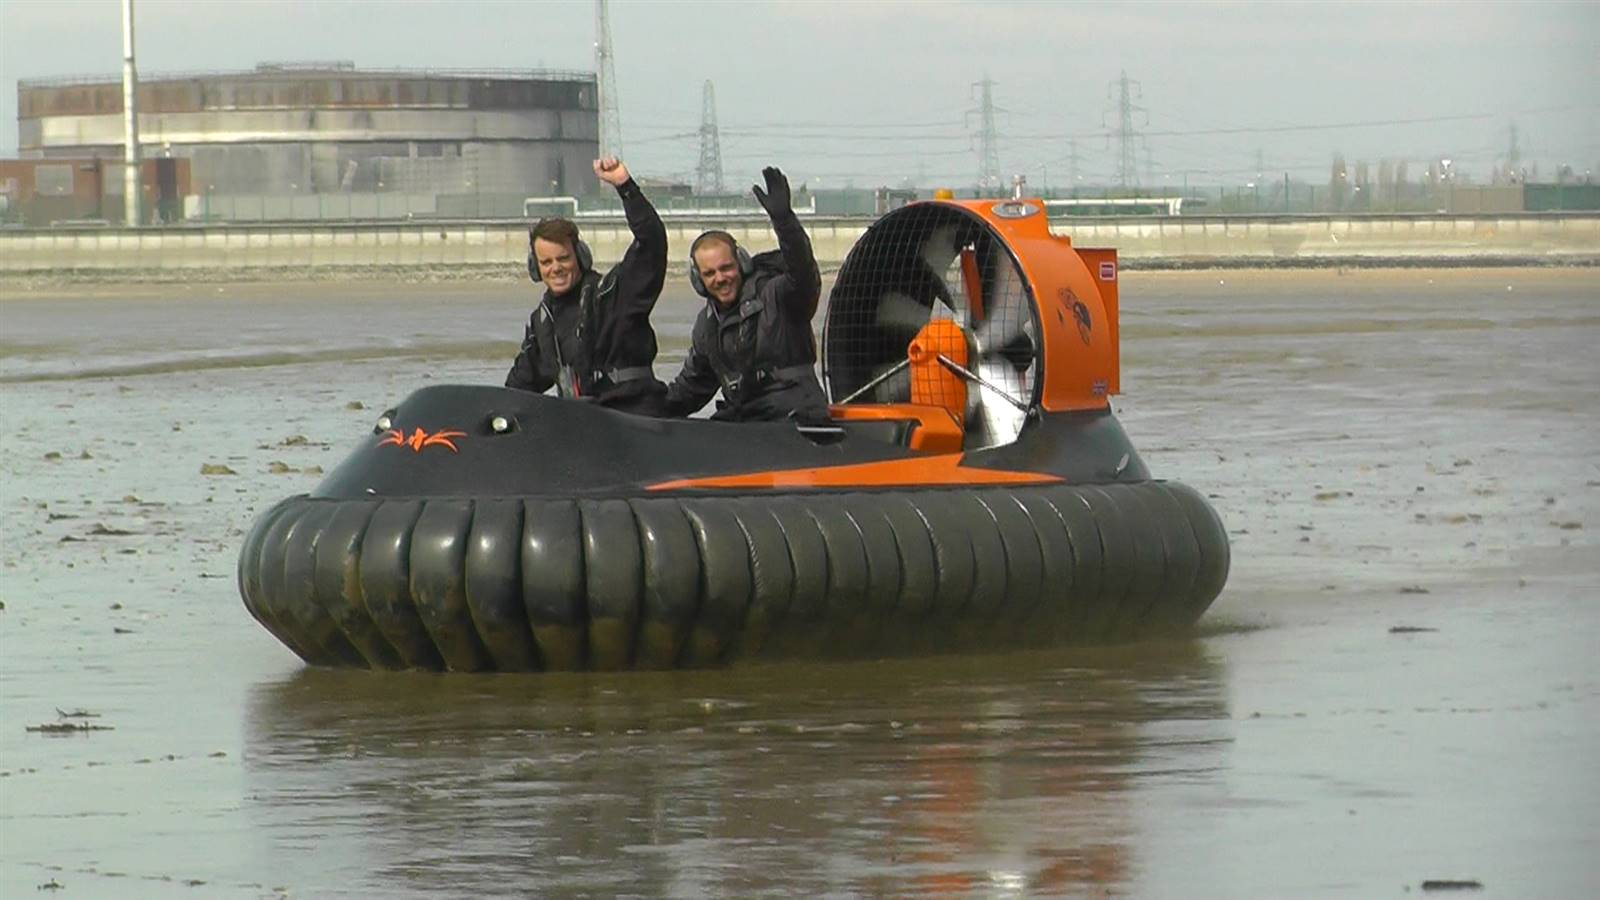 Hovercraft pair in mud